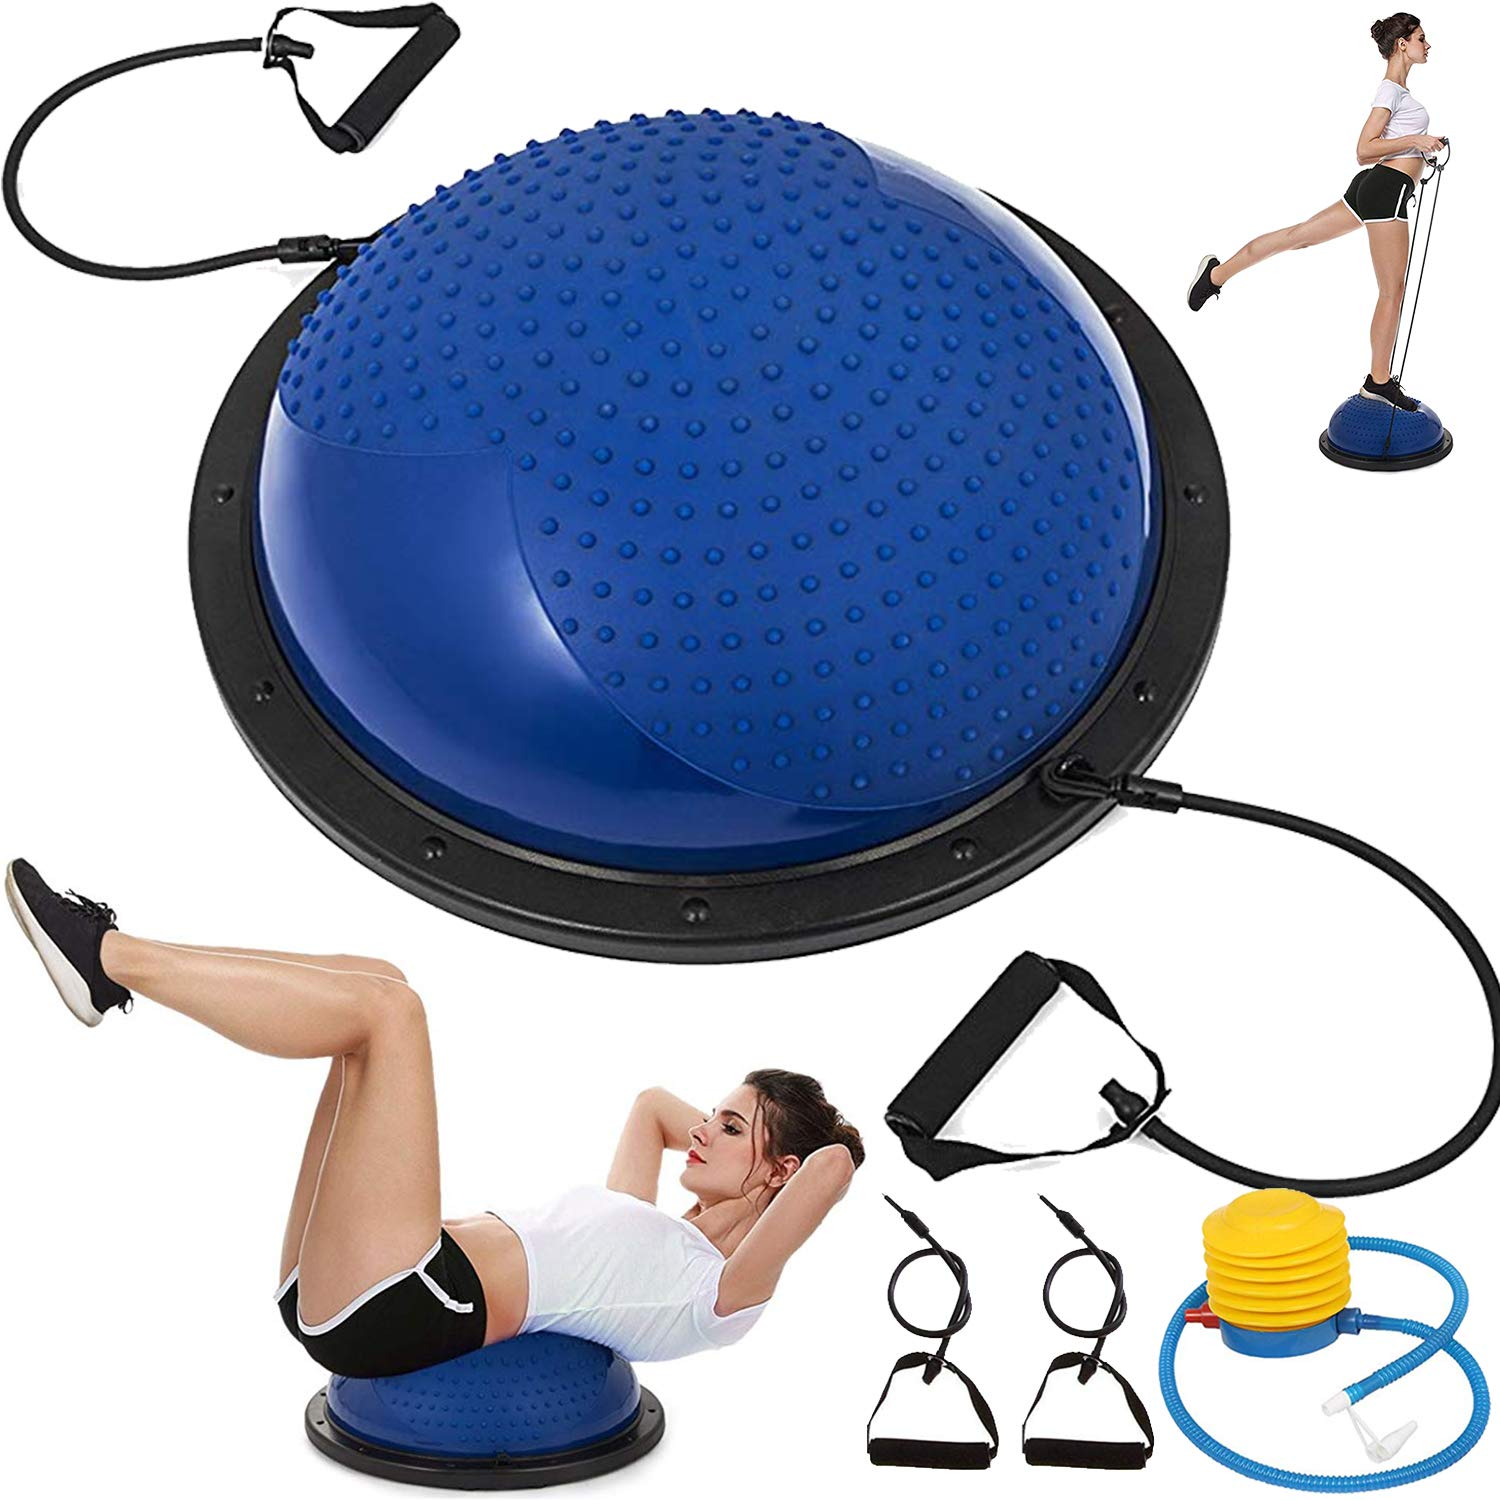 VEVOR Balance Trainer Ball 23 Inch Balance Trainer Blue Yoga Balance Ball Fitness Strength Exercise Workout with Resistance Bands and Pump (Blue Massage)